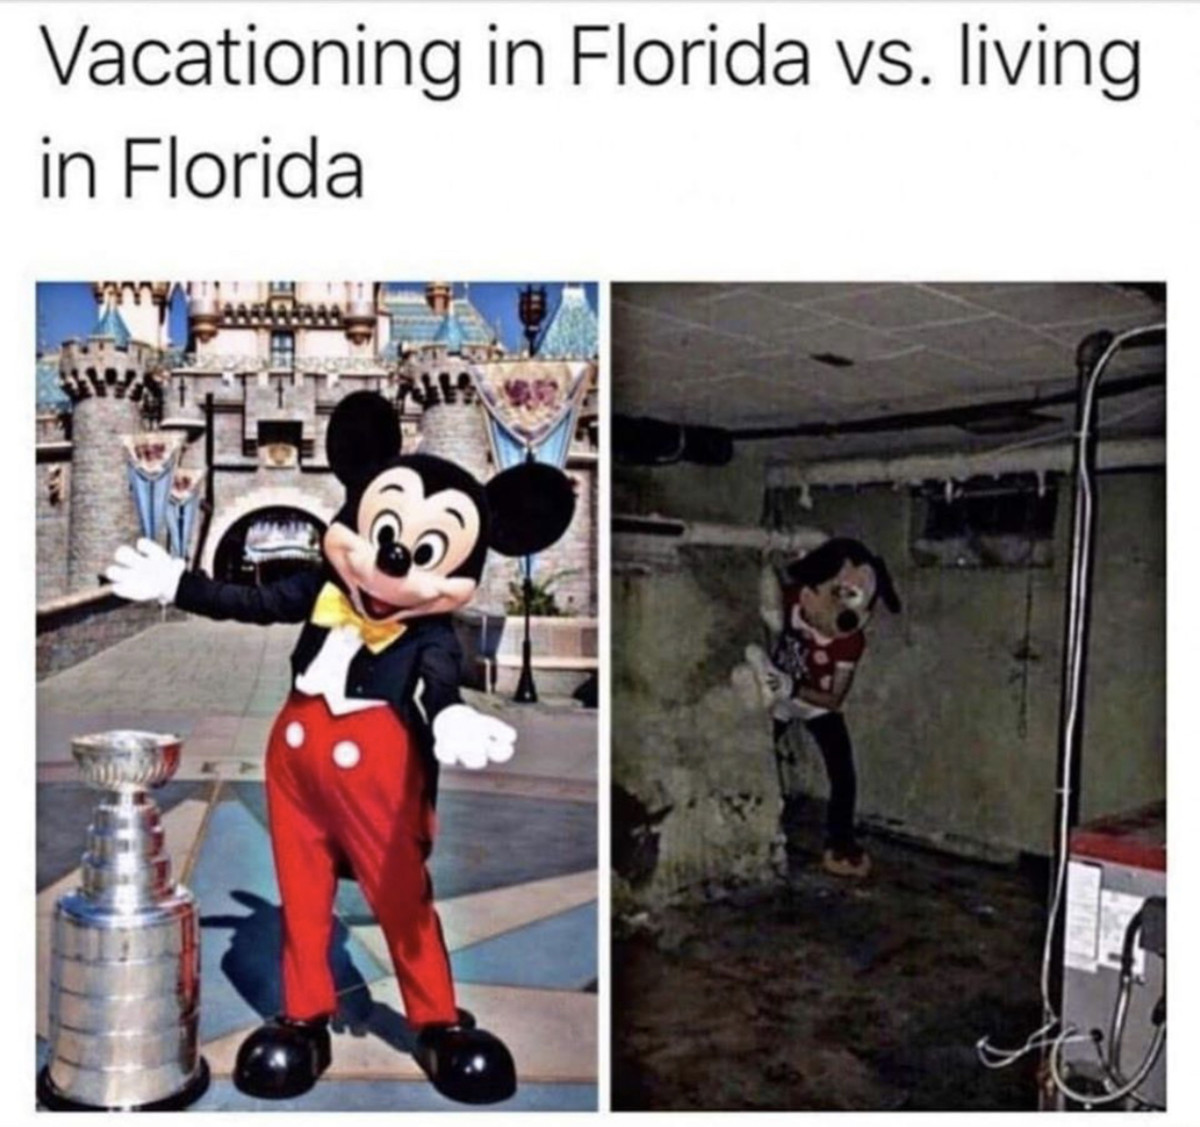 Florida mouse. .. I hate even vacationing here. Its hot, humid, and you see a homeless person with a 10x average chance of being high on meth every other public street.